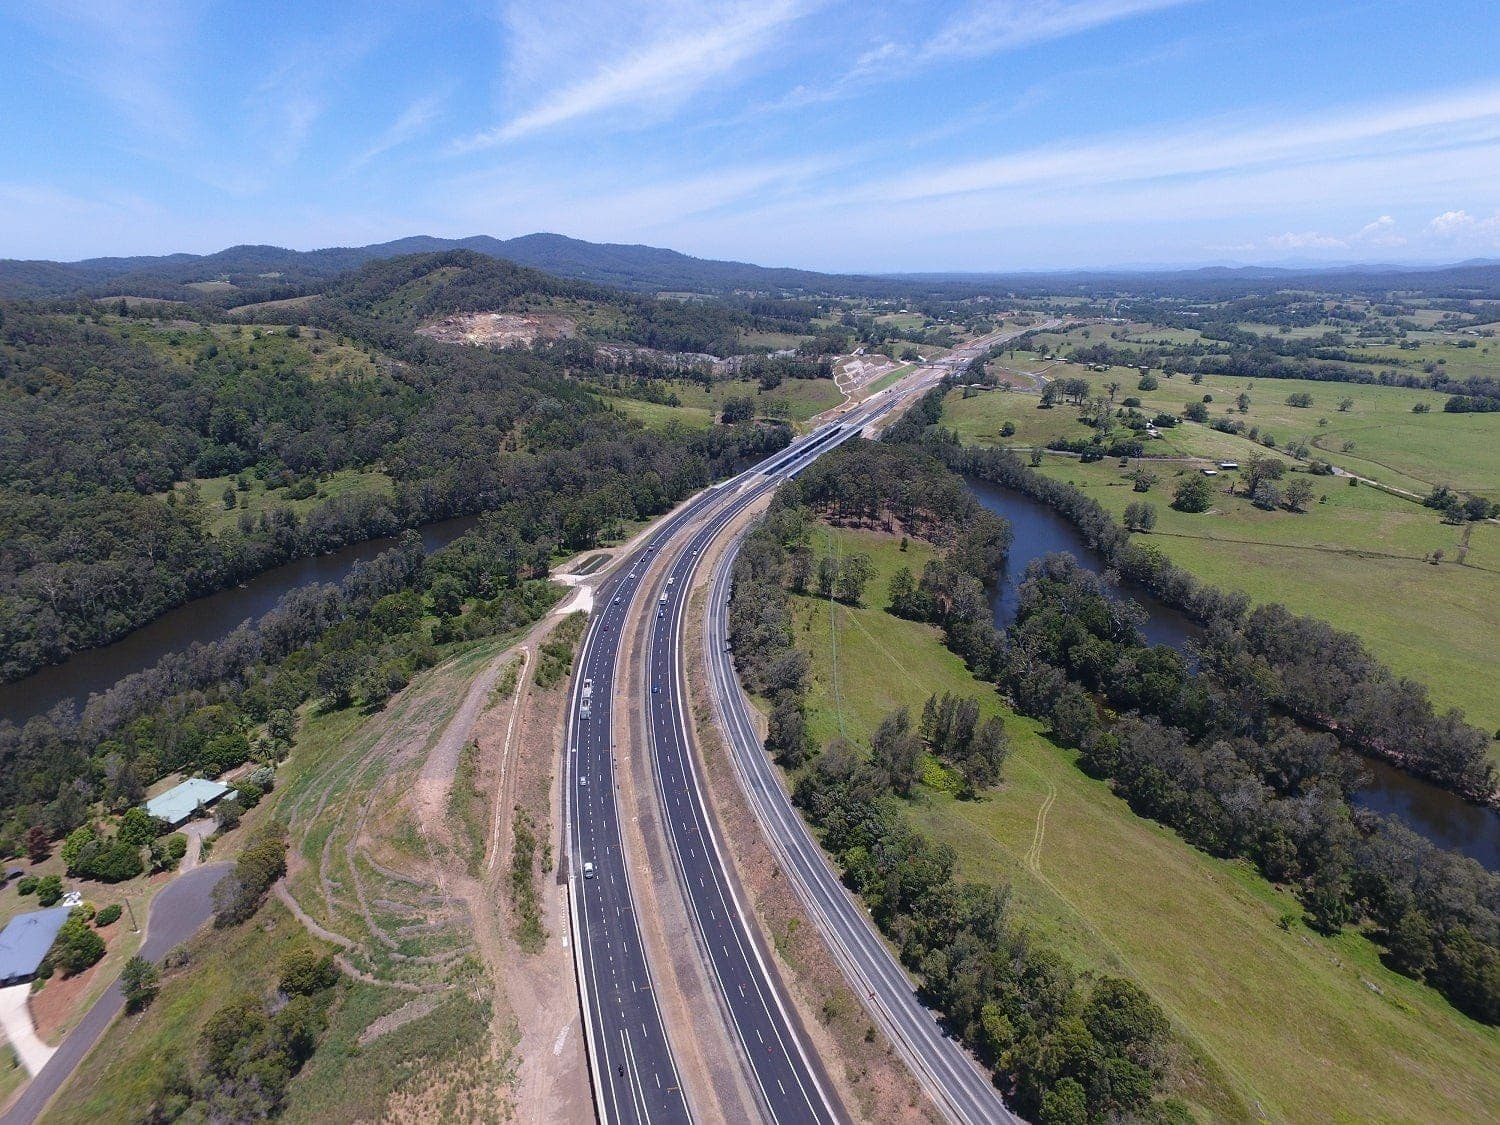 The Pacific Highway in Australia is a BIM project